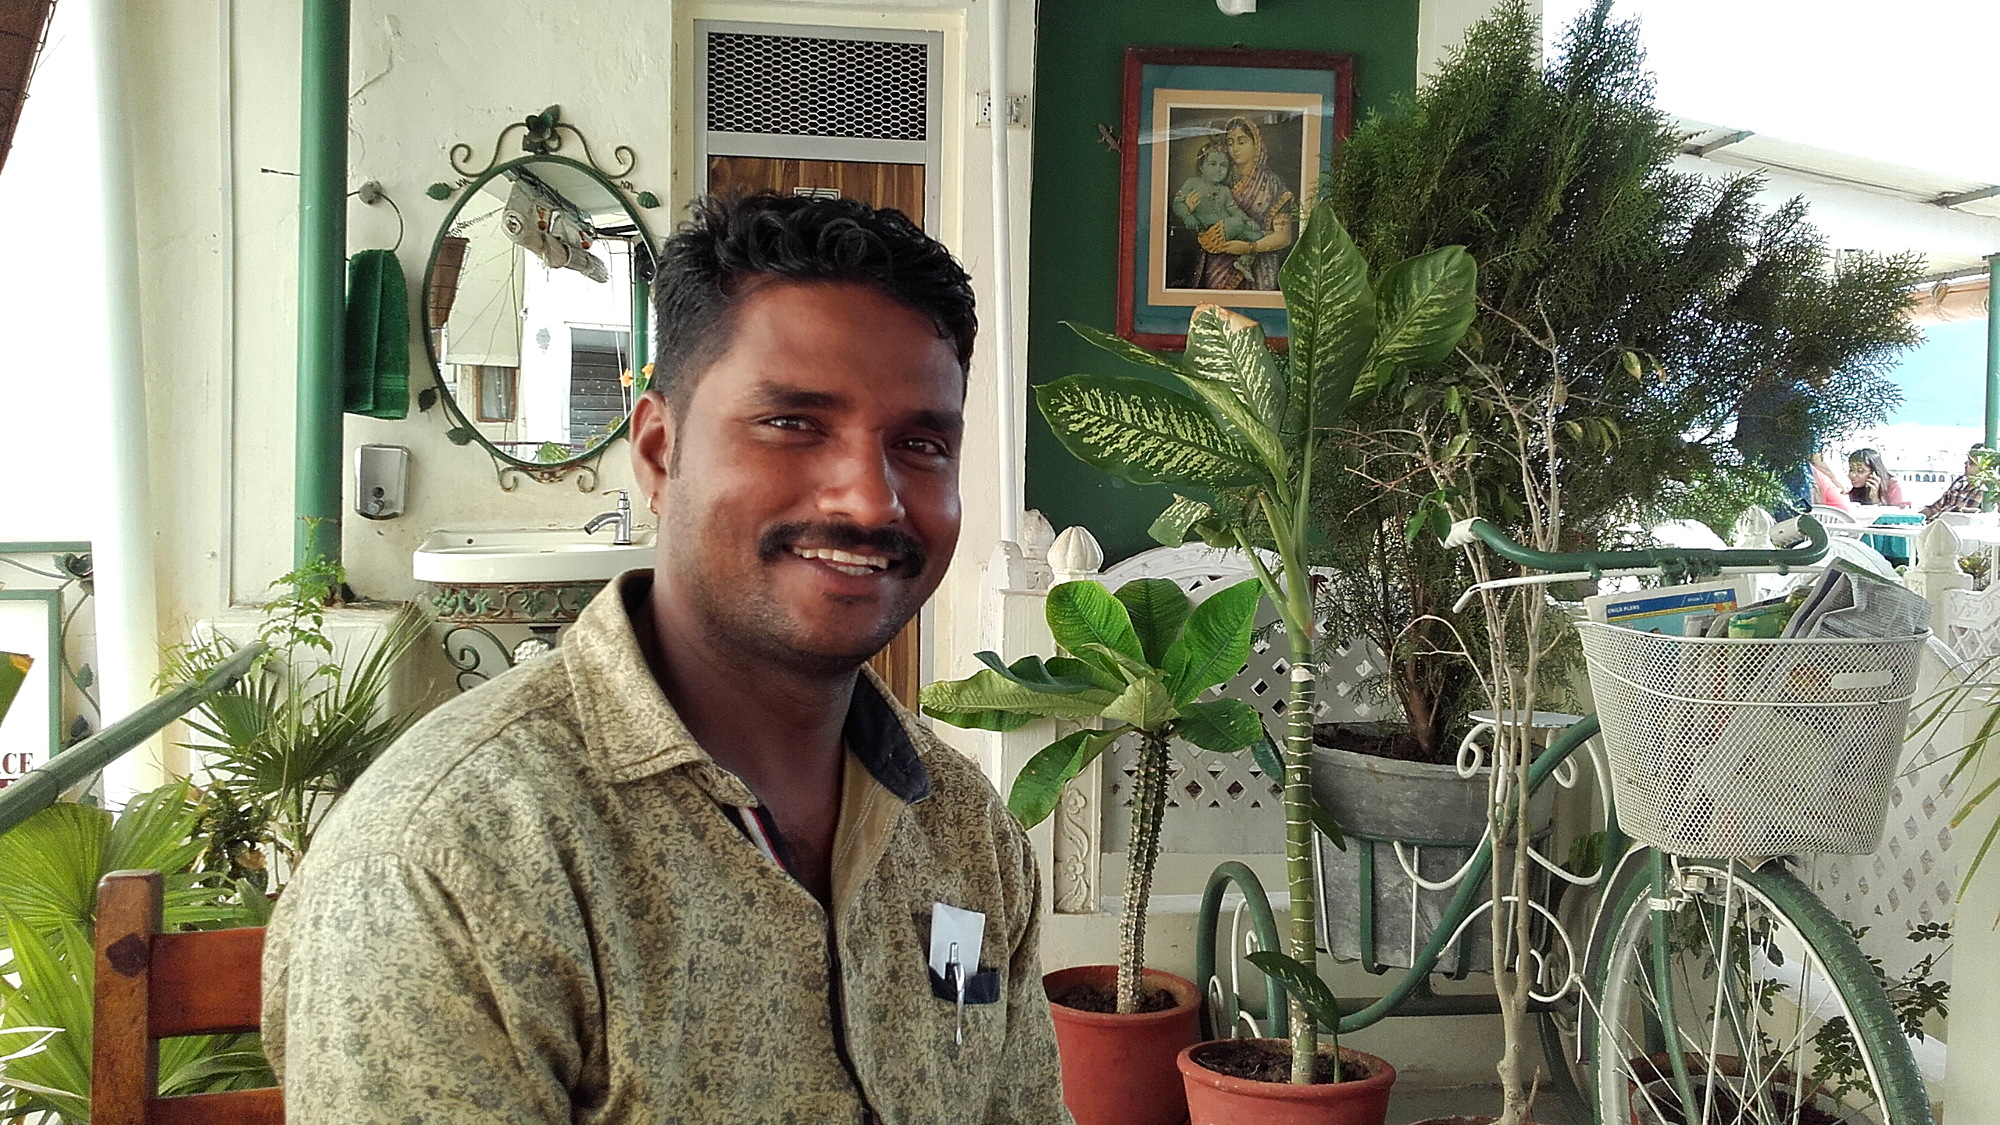 A smiling Indian man with a mustache in a restaurant.